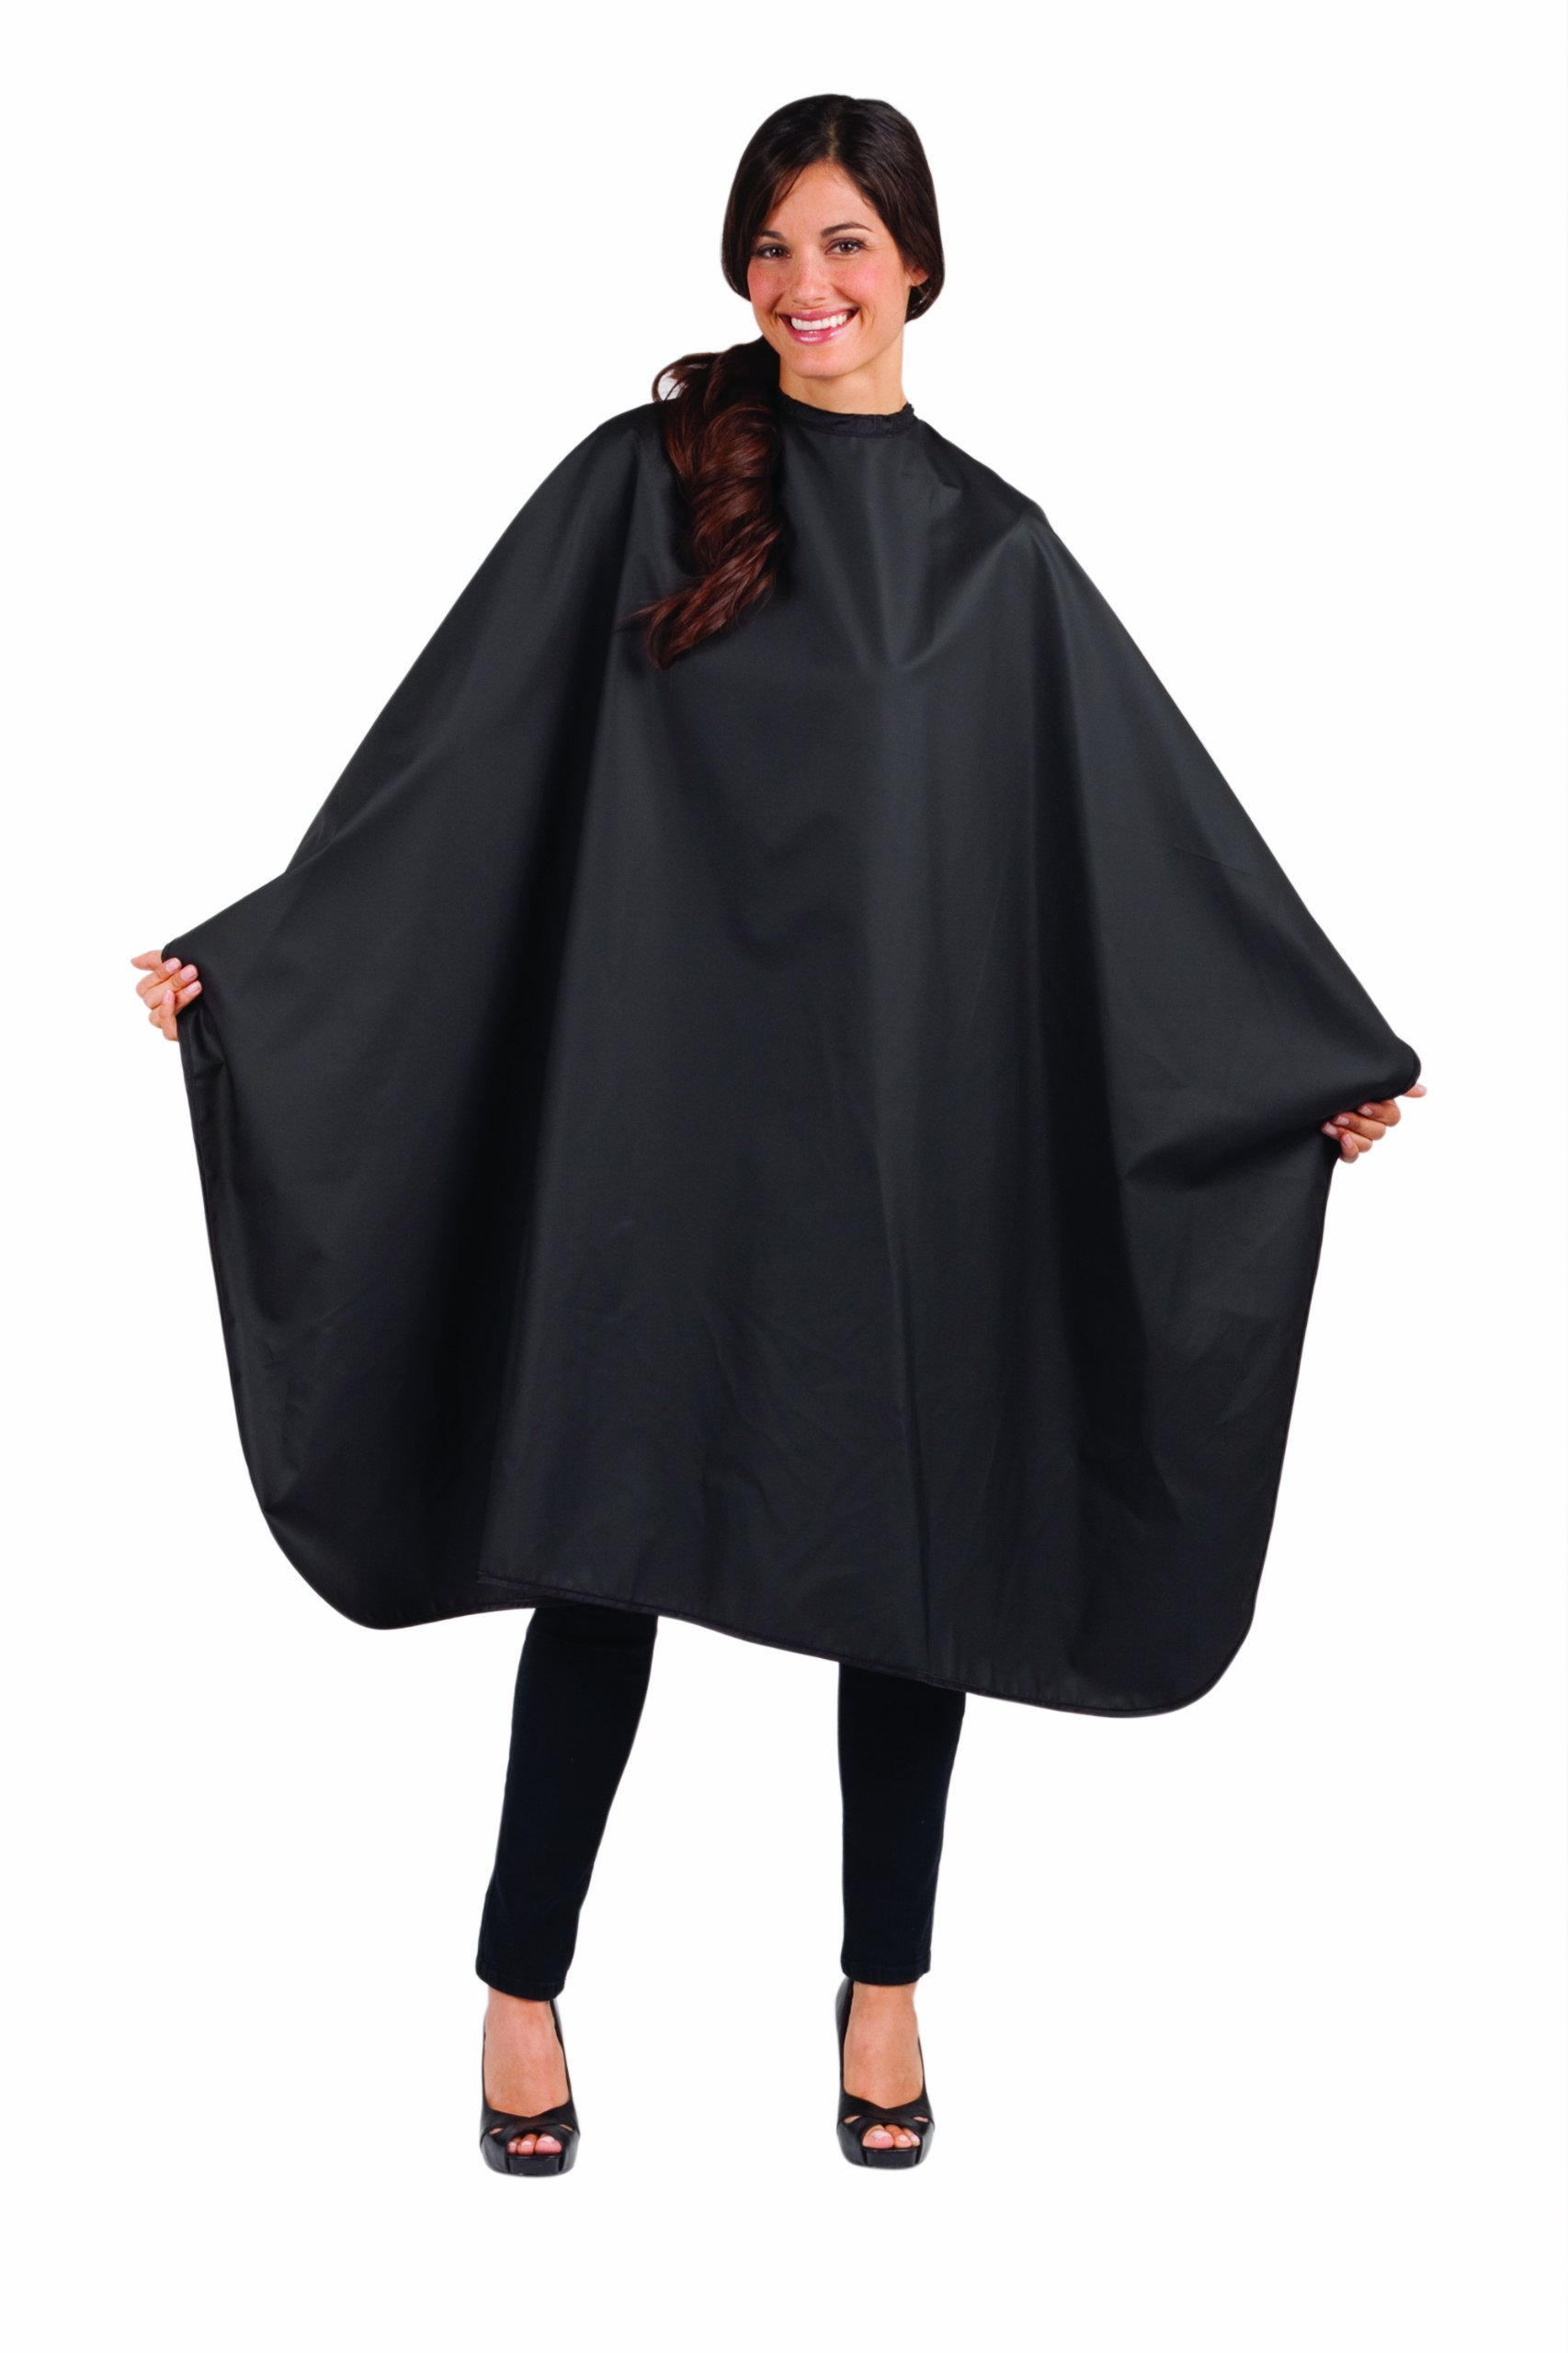 Betty Dain Signature Mirage Chemical-proof Coloring/Styling Cape, Black by Betty Dain